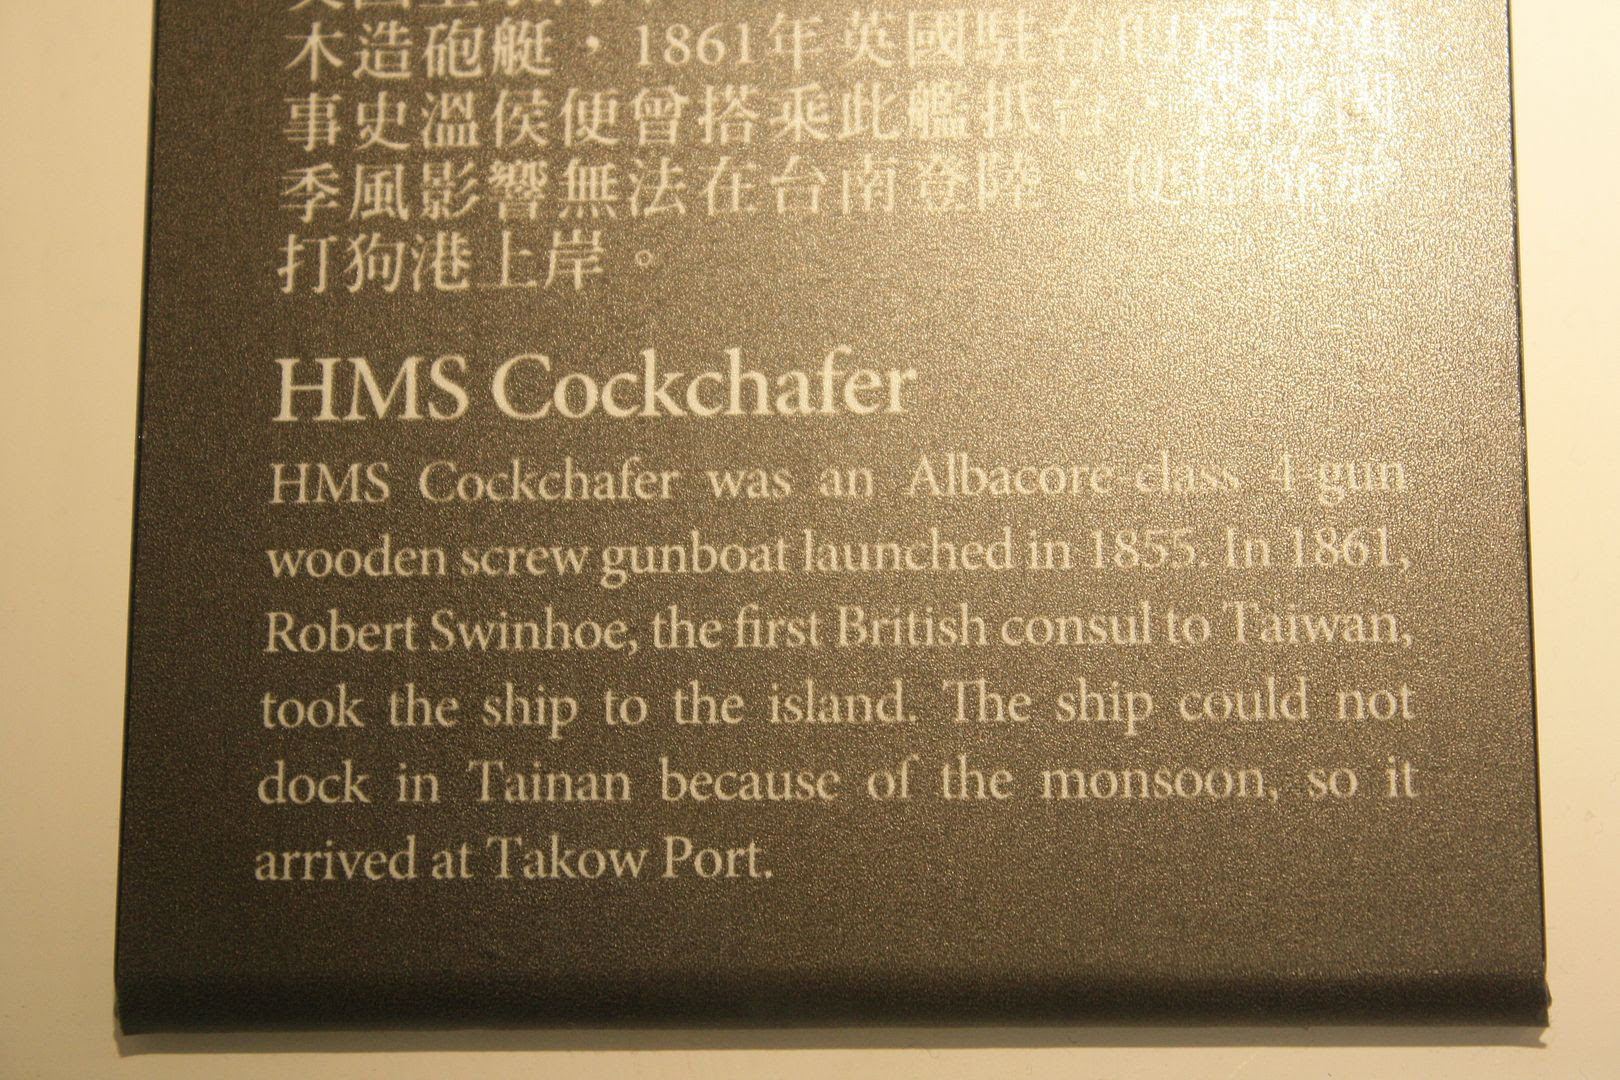 """Cockchafer"" is a good name for a screw gunboat. Sorry if that's too much . . . photo 2013-12-26230633_zpsa7b20219.jpg"